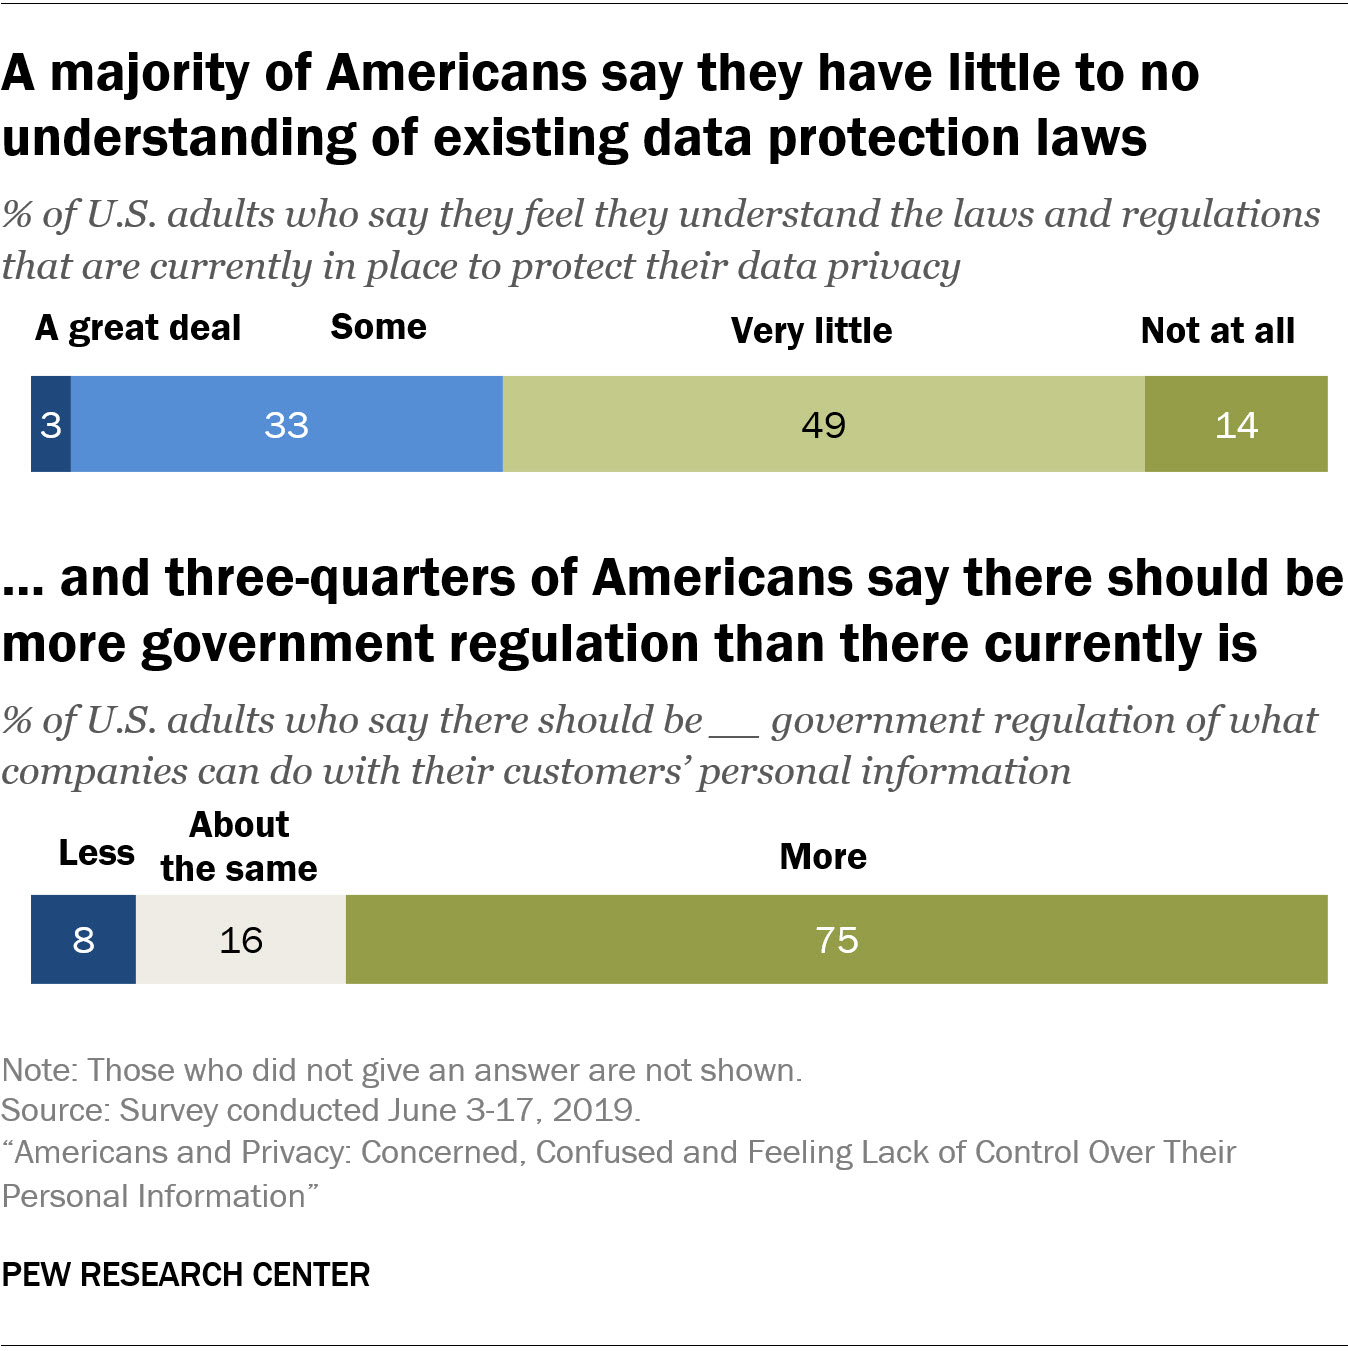 A majority of Americans say they have little or no understanding of existing data protection laws